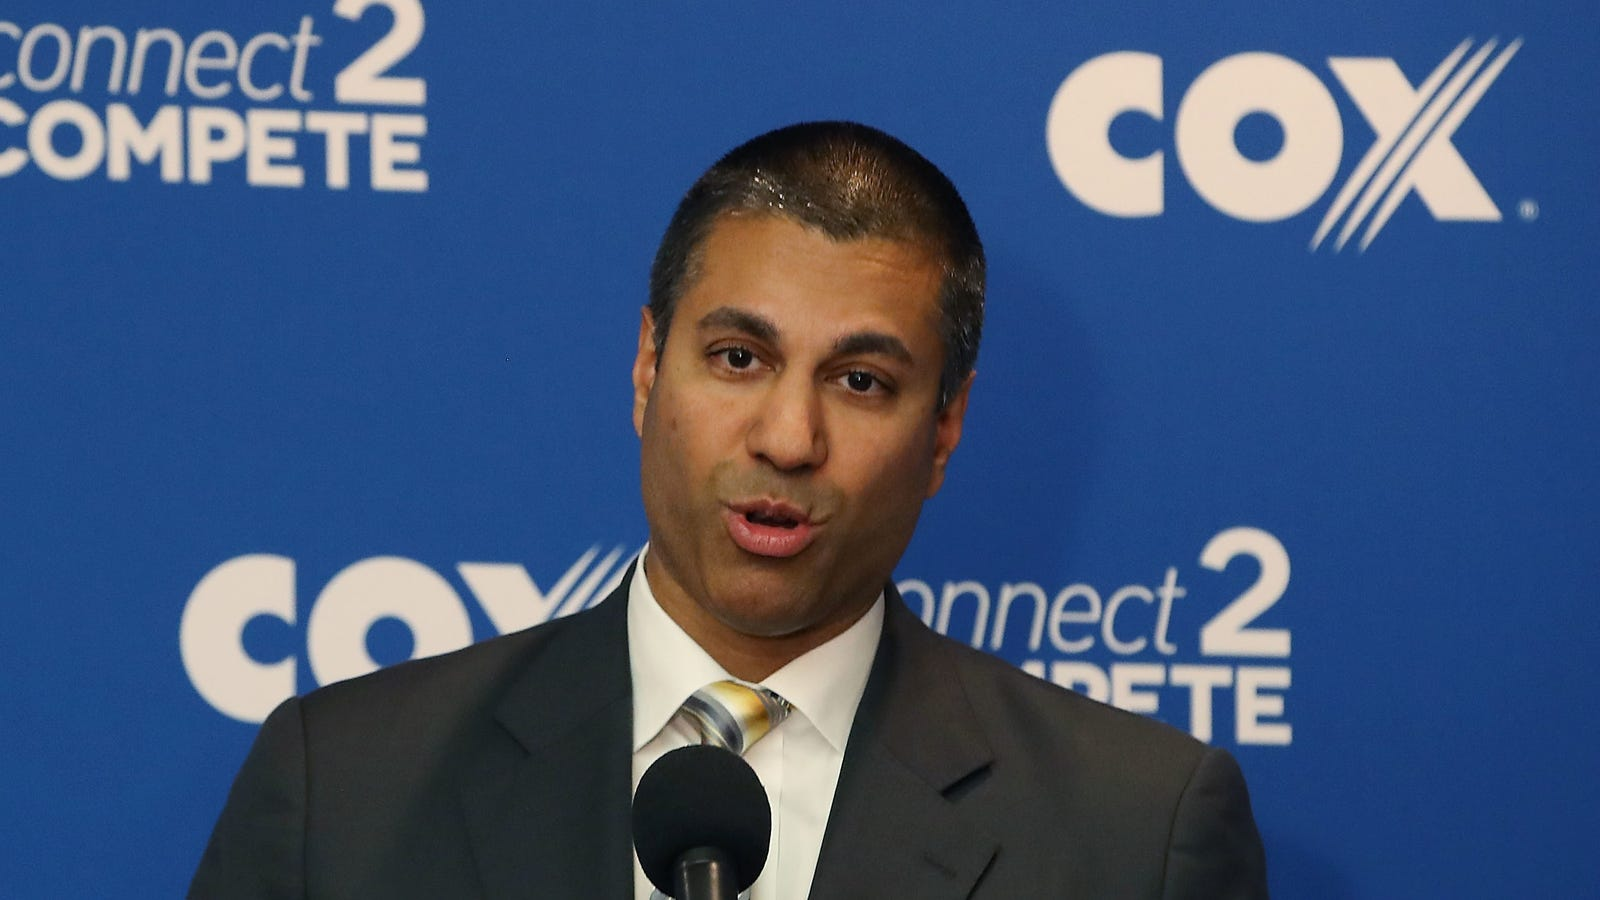 Ajit Pai's Silence on Phone Location Abuse Is Further Eroding Faith in His Competence